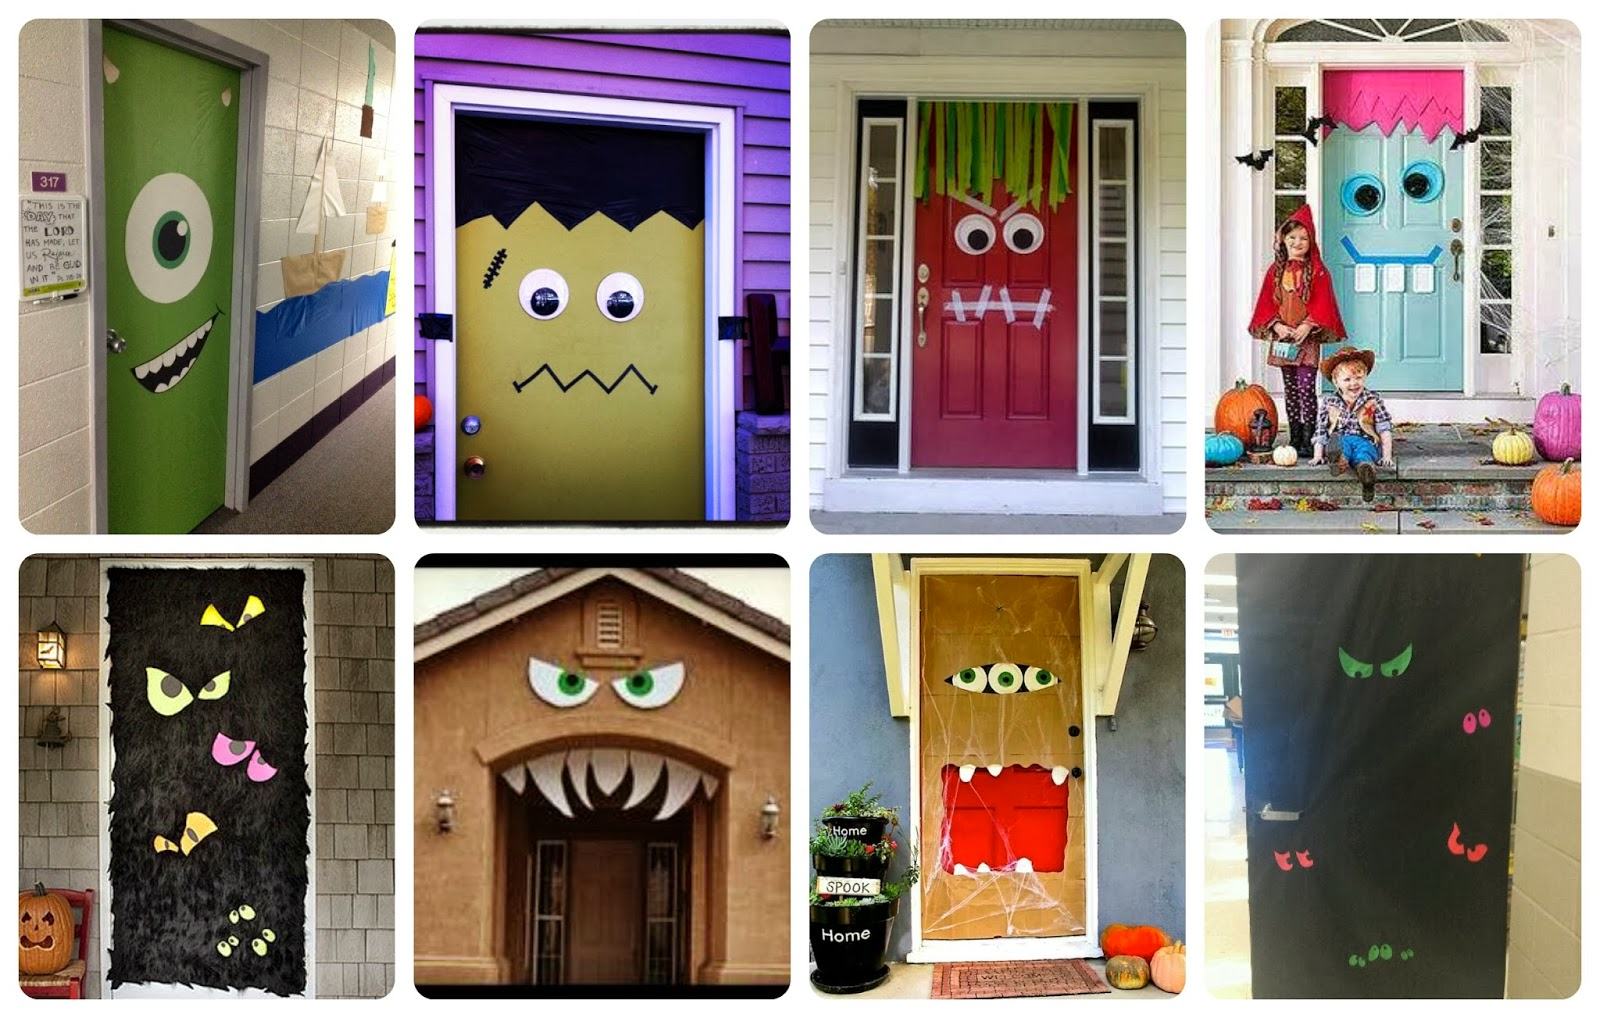 Recursos ideas para decorar en halloween lluvia de ideas for Decoracion de puertas de carnaval